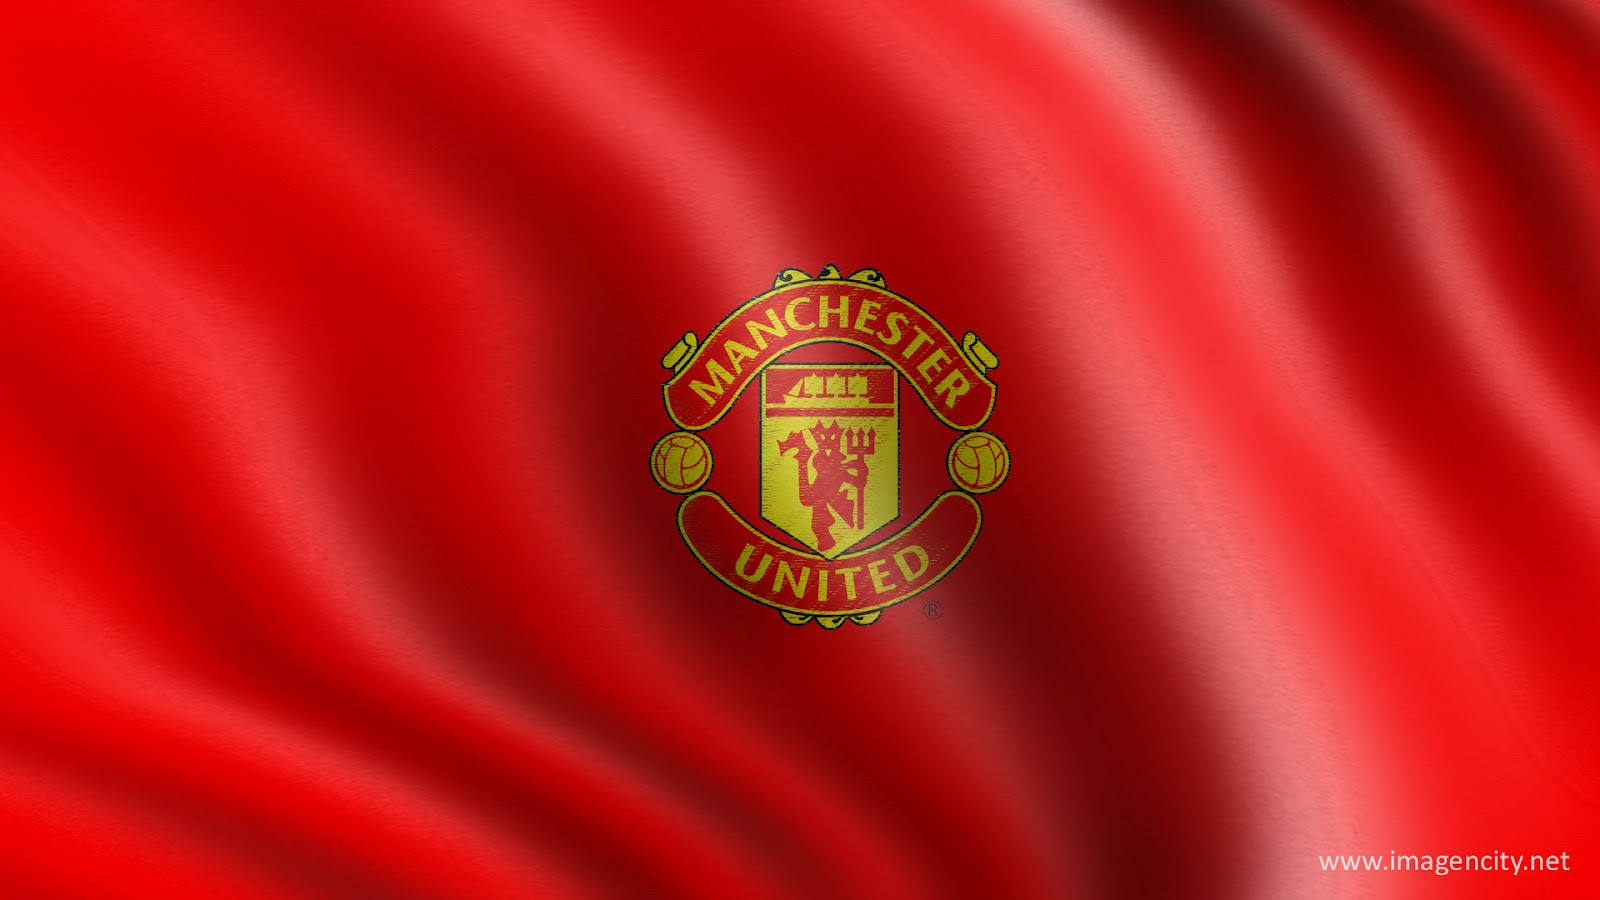 Man Utd Hd Logo Wallapapers For Desktop 2020 Collection Man Utd Core